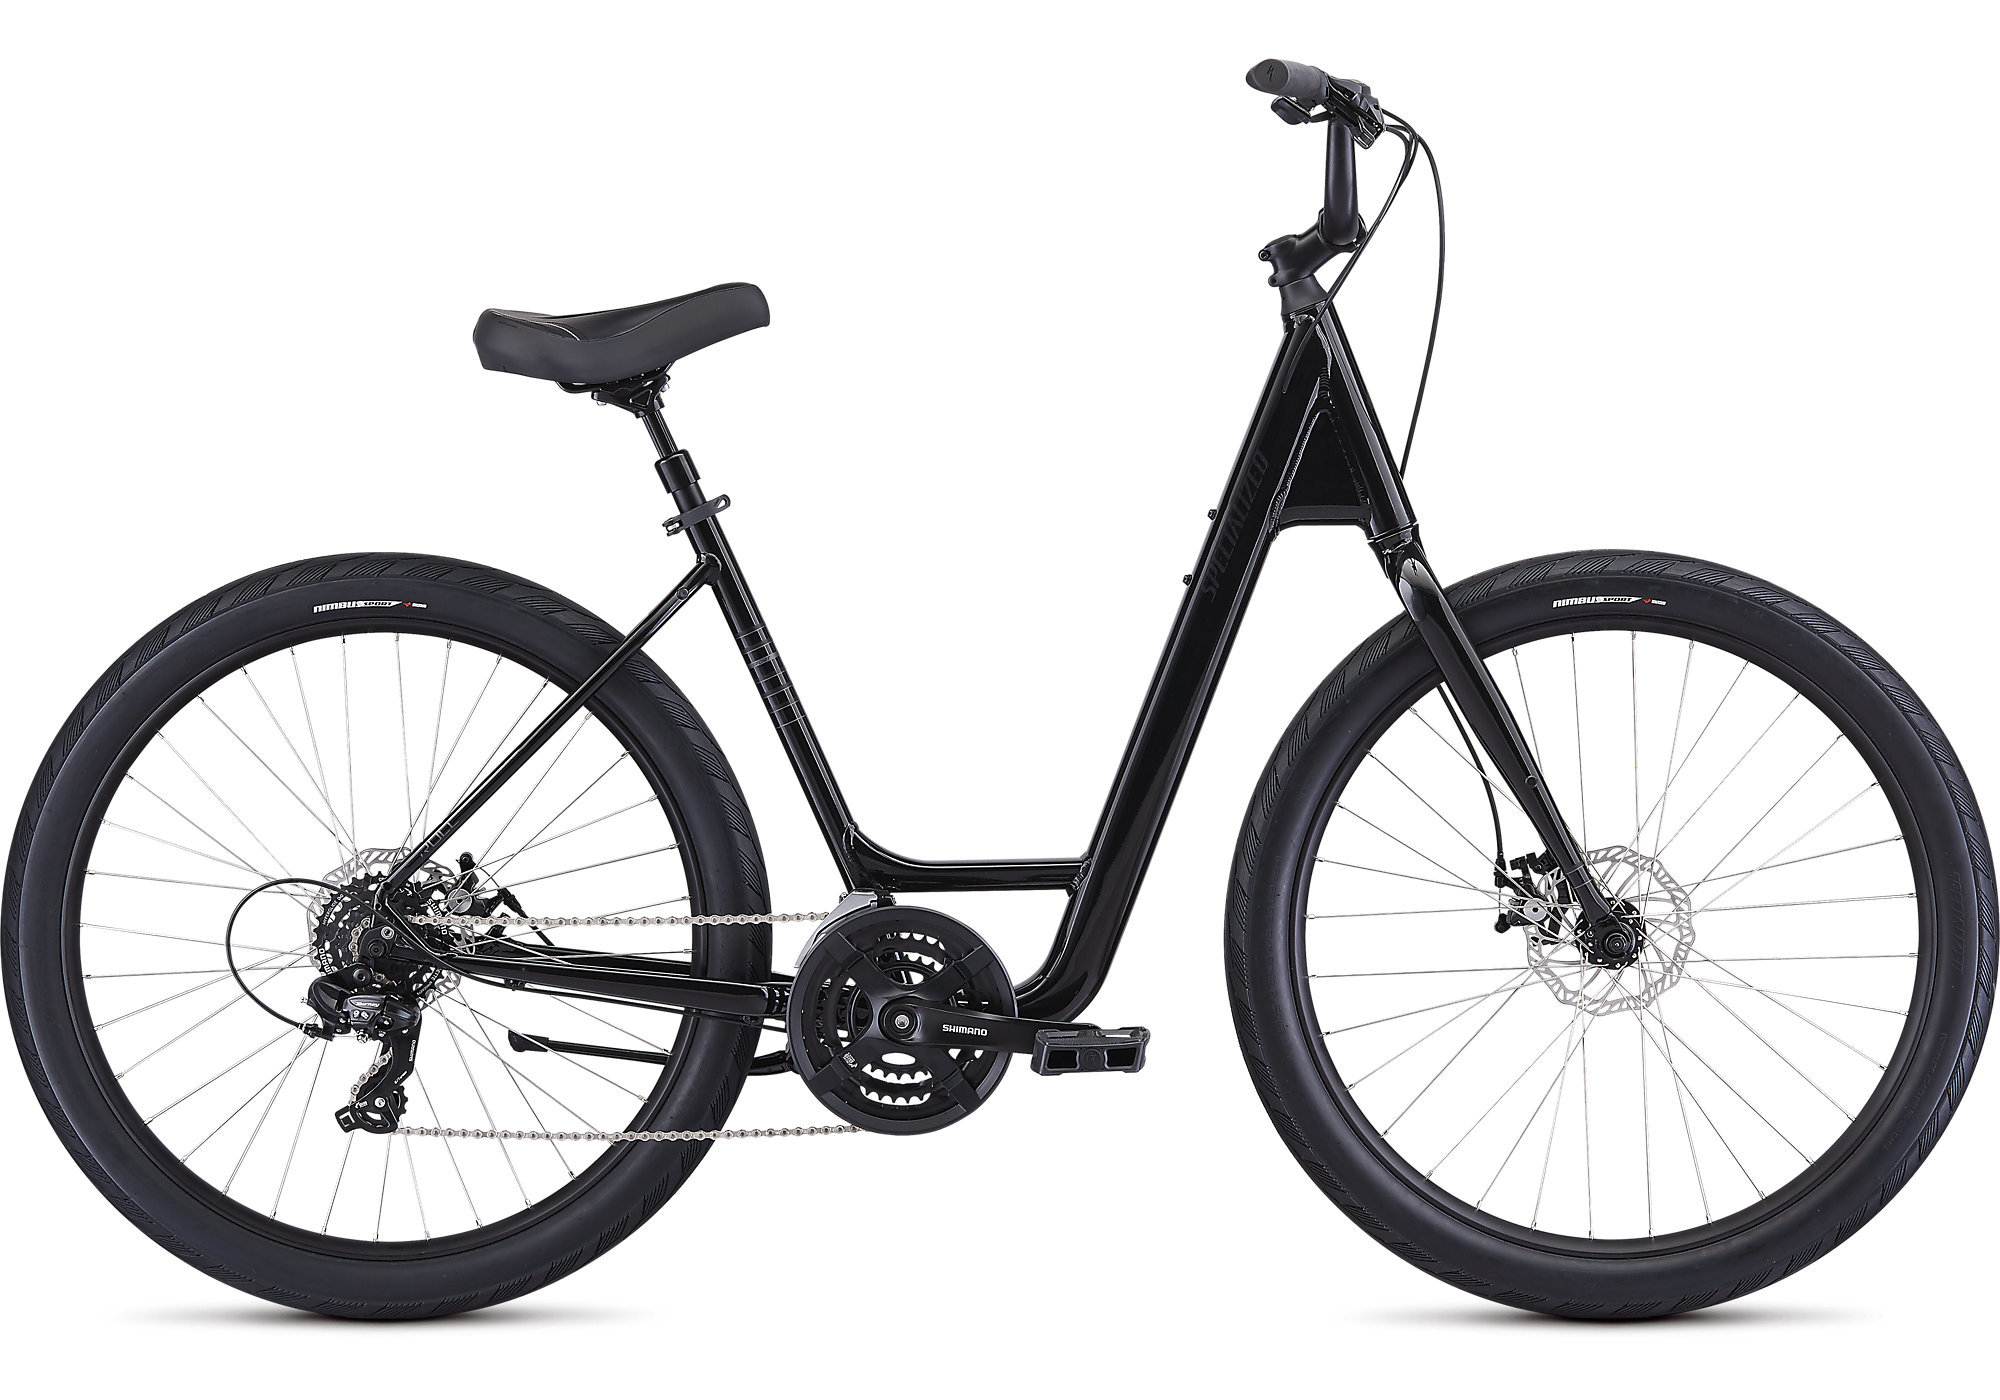 Specialized Roll Sport Low Entry Bike Stop Bicycle